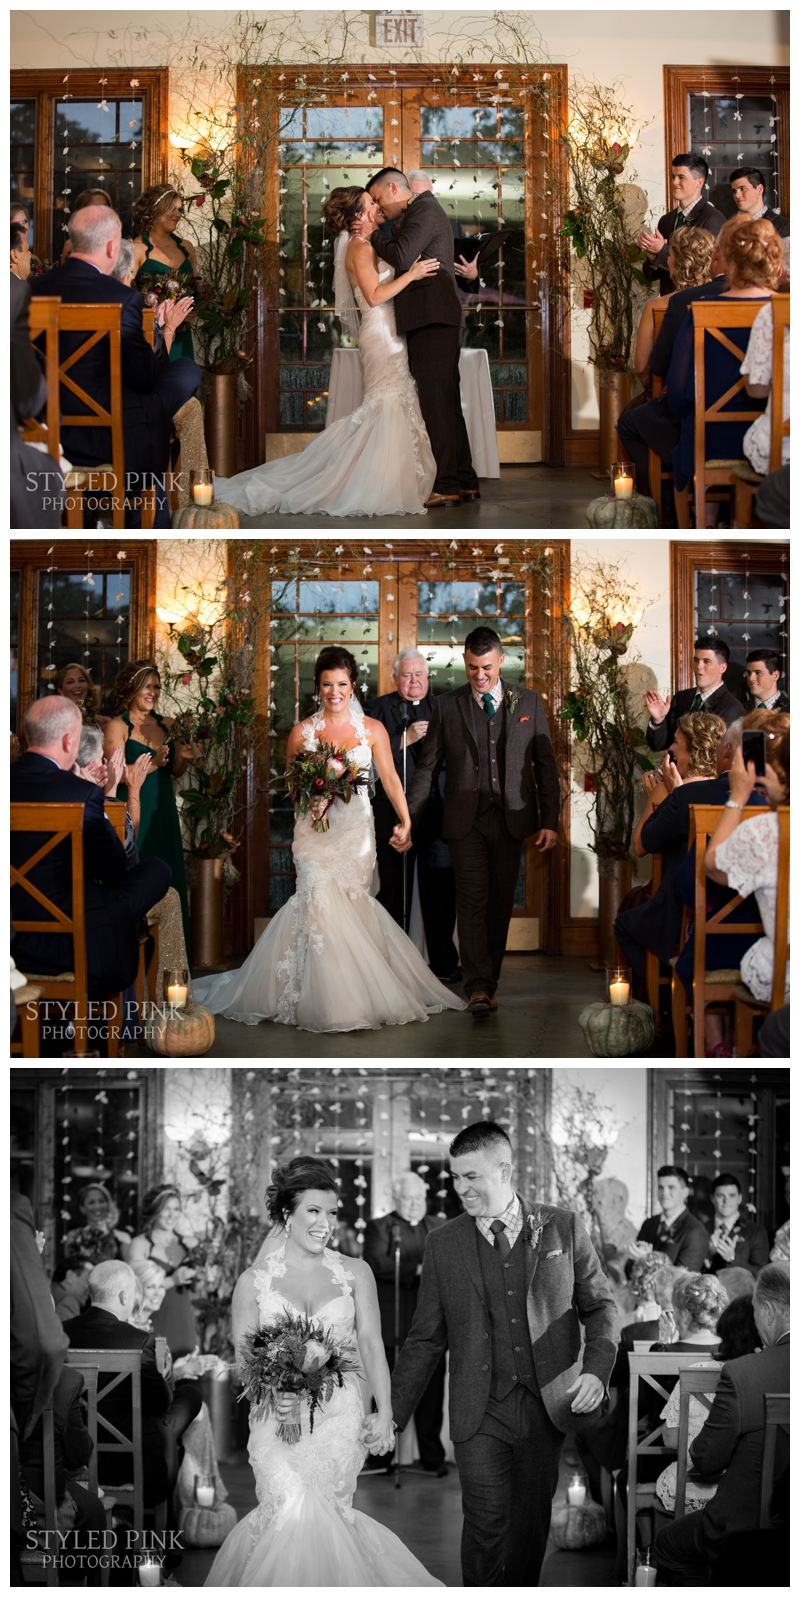 styled-pink-photography-knowlton-mansion-wedding-41